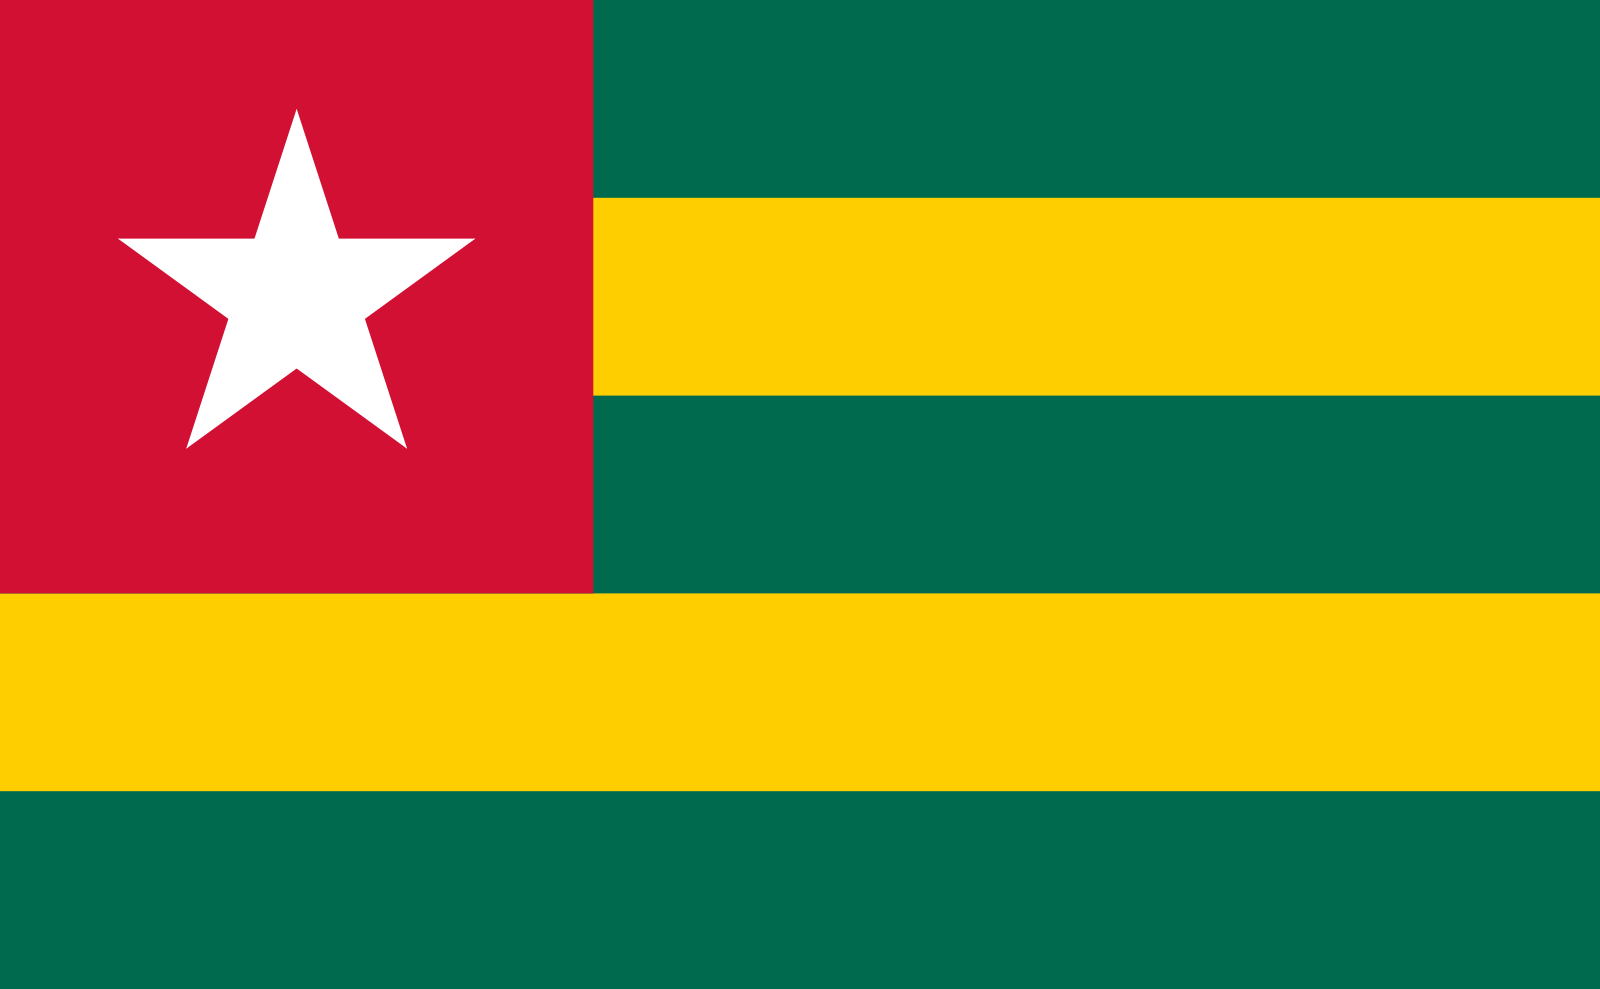 Togo | Flags of countries